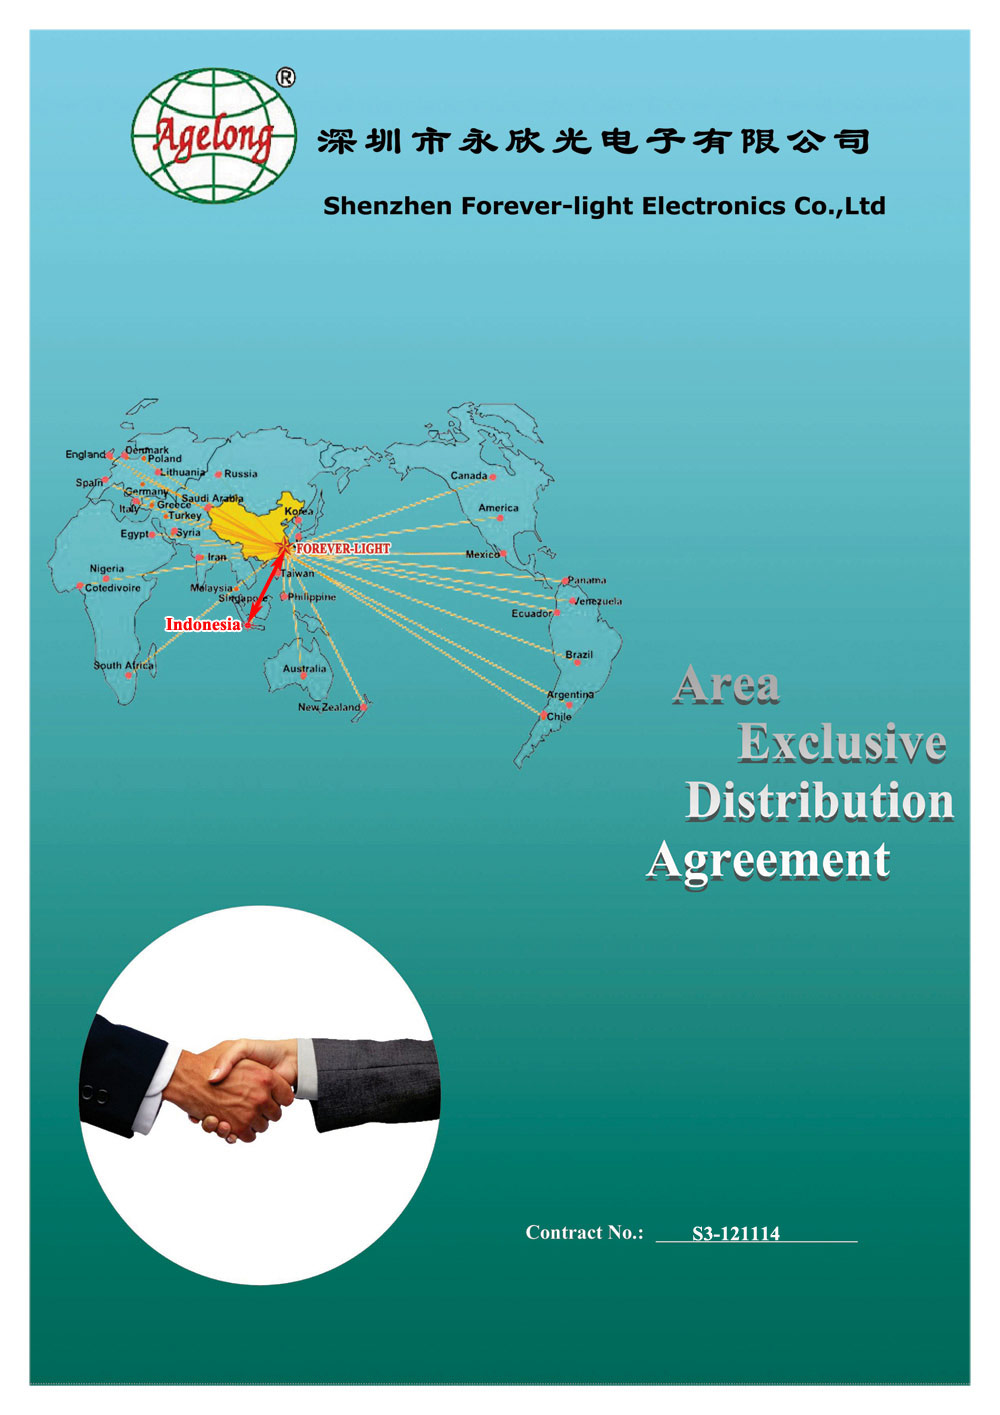 our company signed an exclusive distribution agreement with Indonesia guest